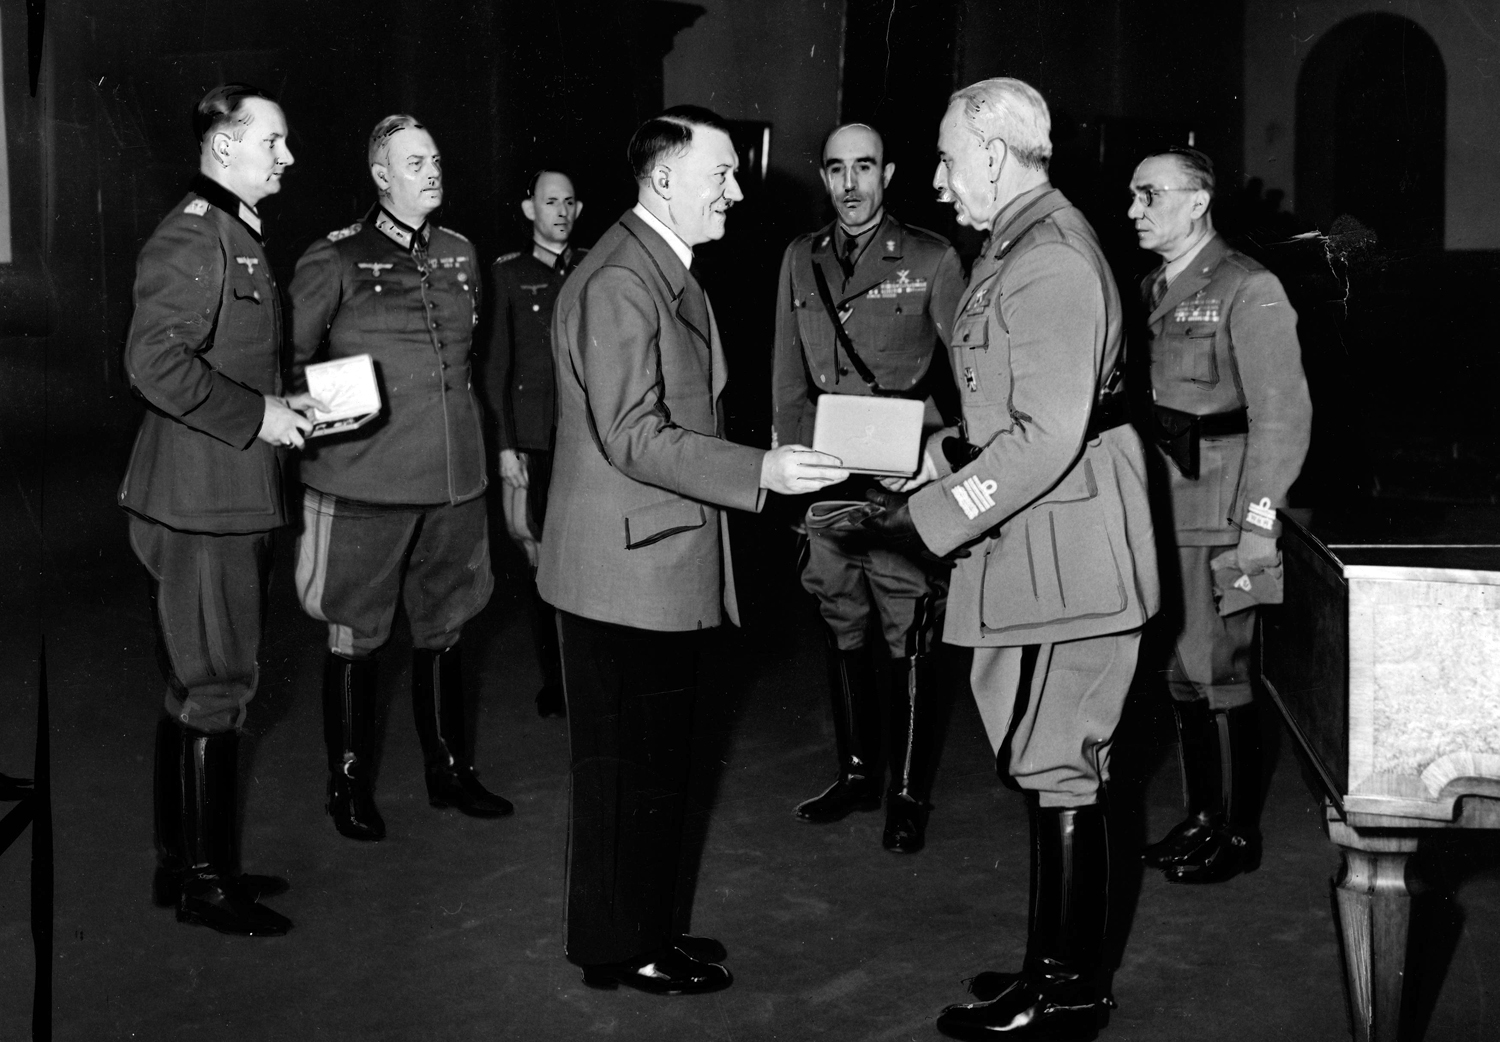 Adolf Hitler awards general Italo Gariboldi with the Knight's cross of the Iron cross at the Berghof